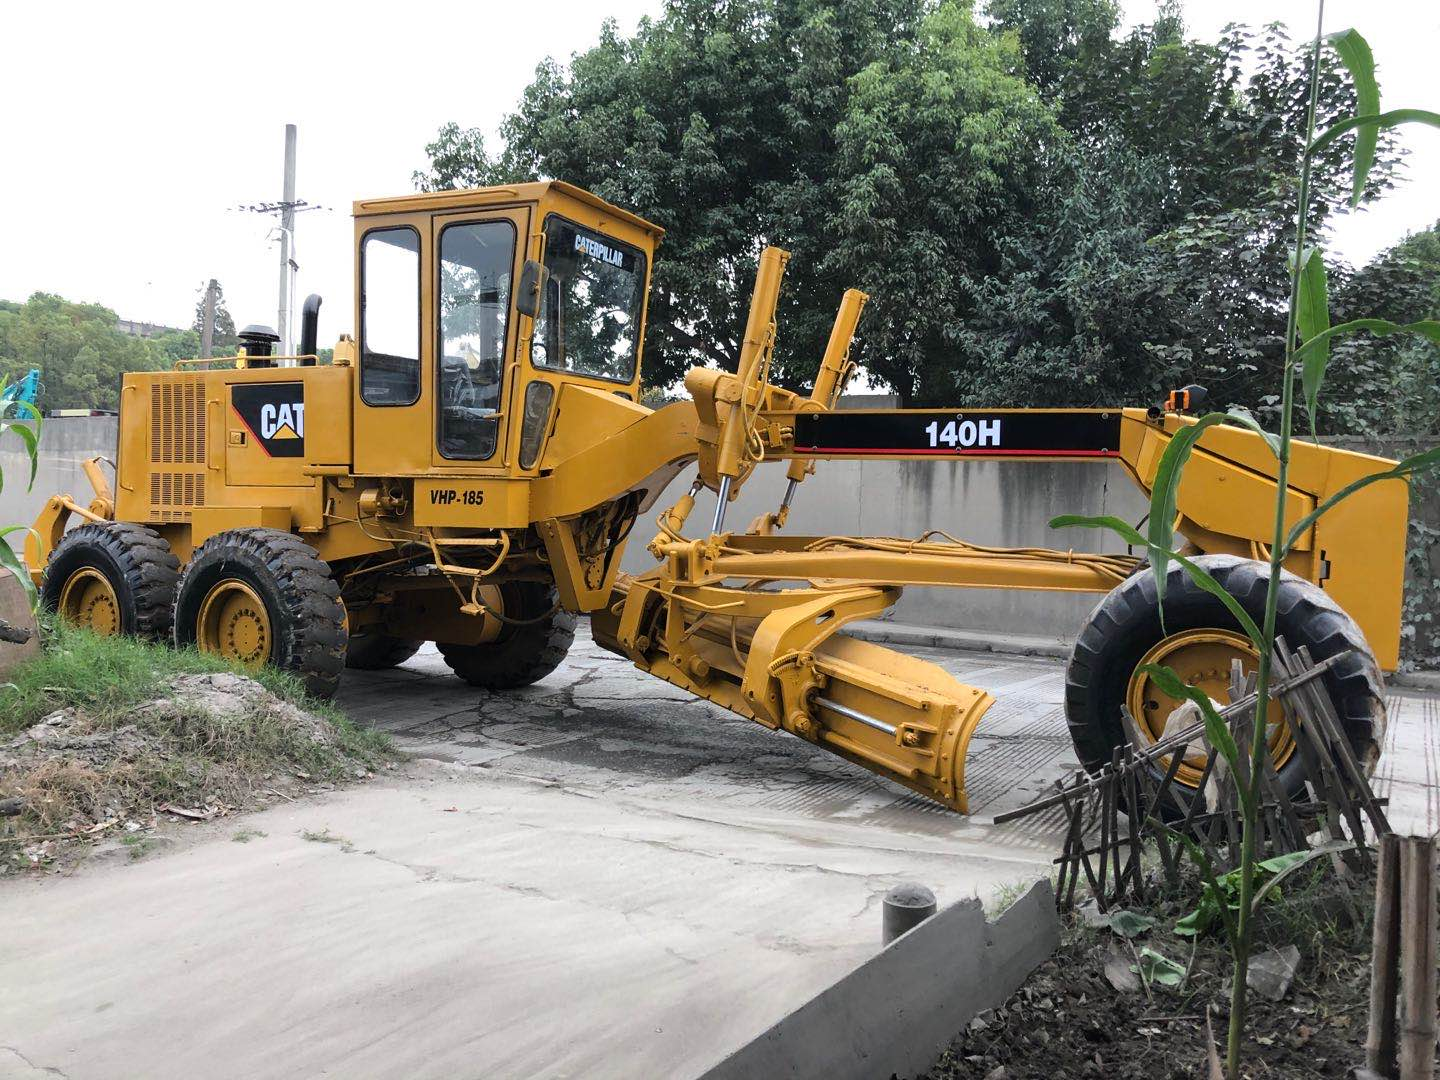 Used CATERPILLAR 140H Motor Grader on Sale